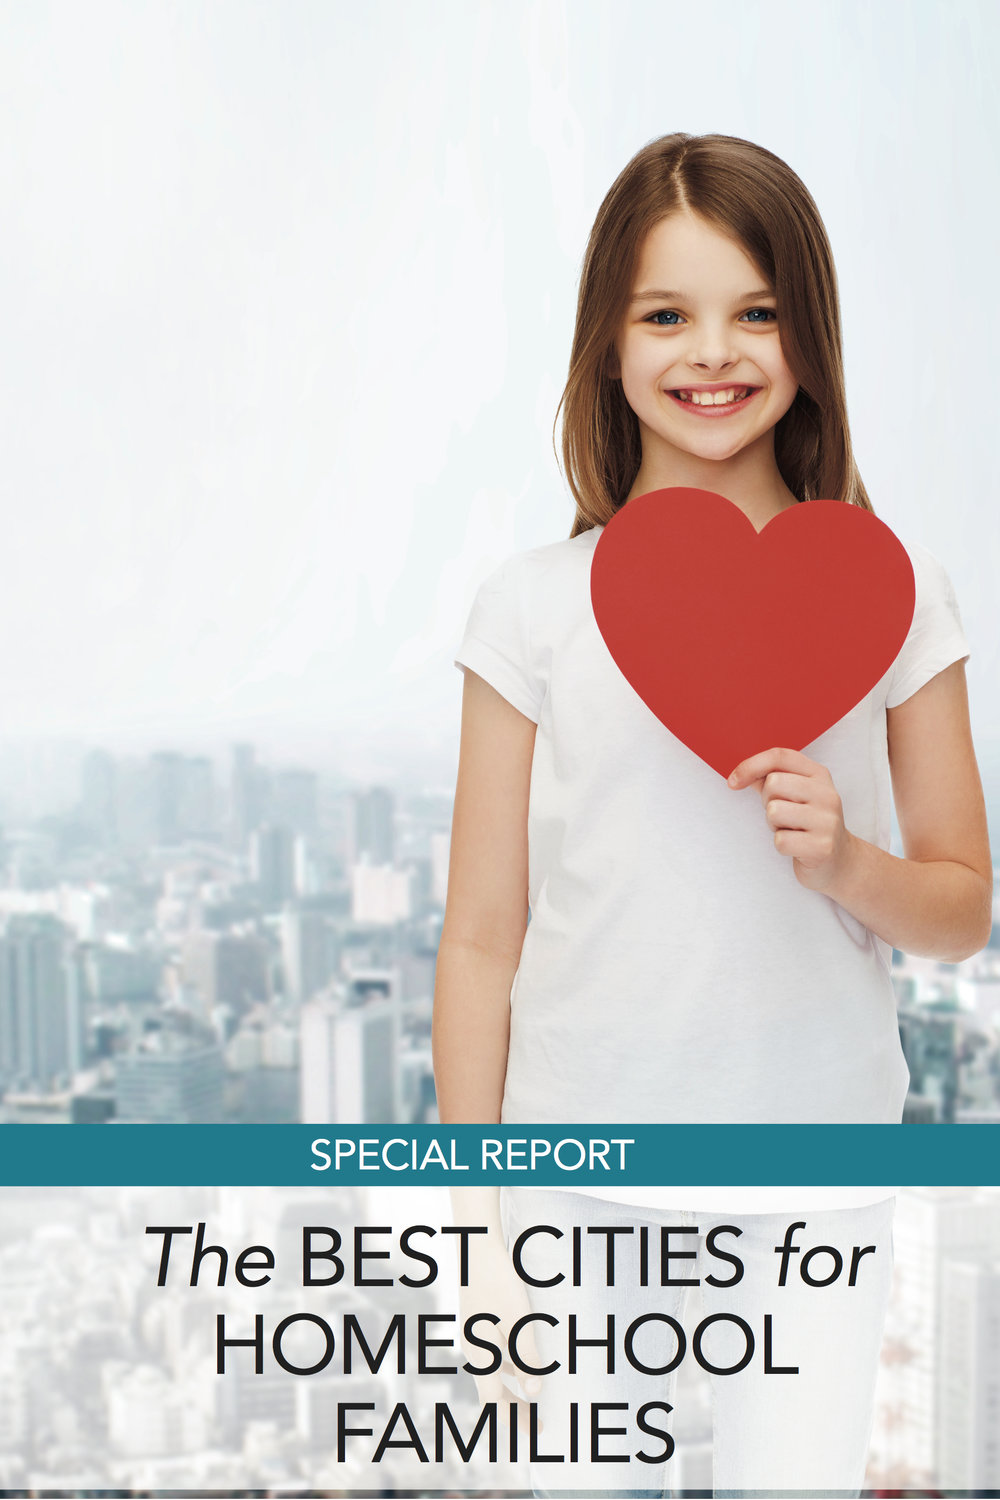 The best cities for homeschool families 2014